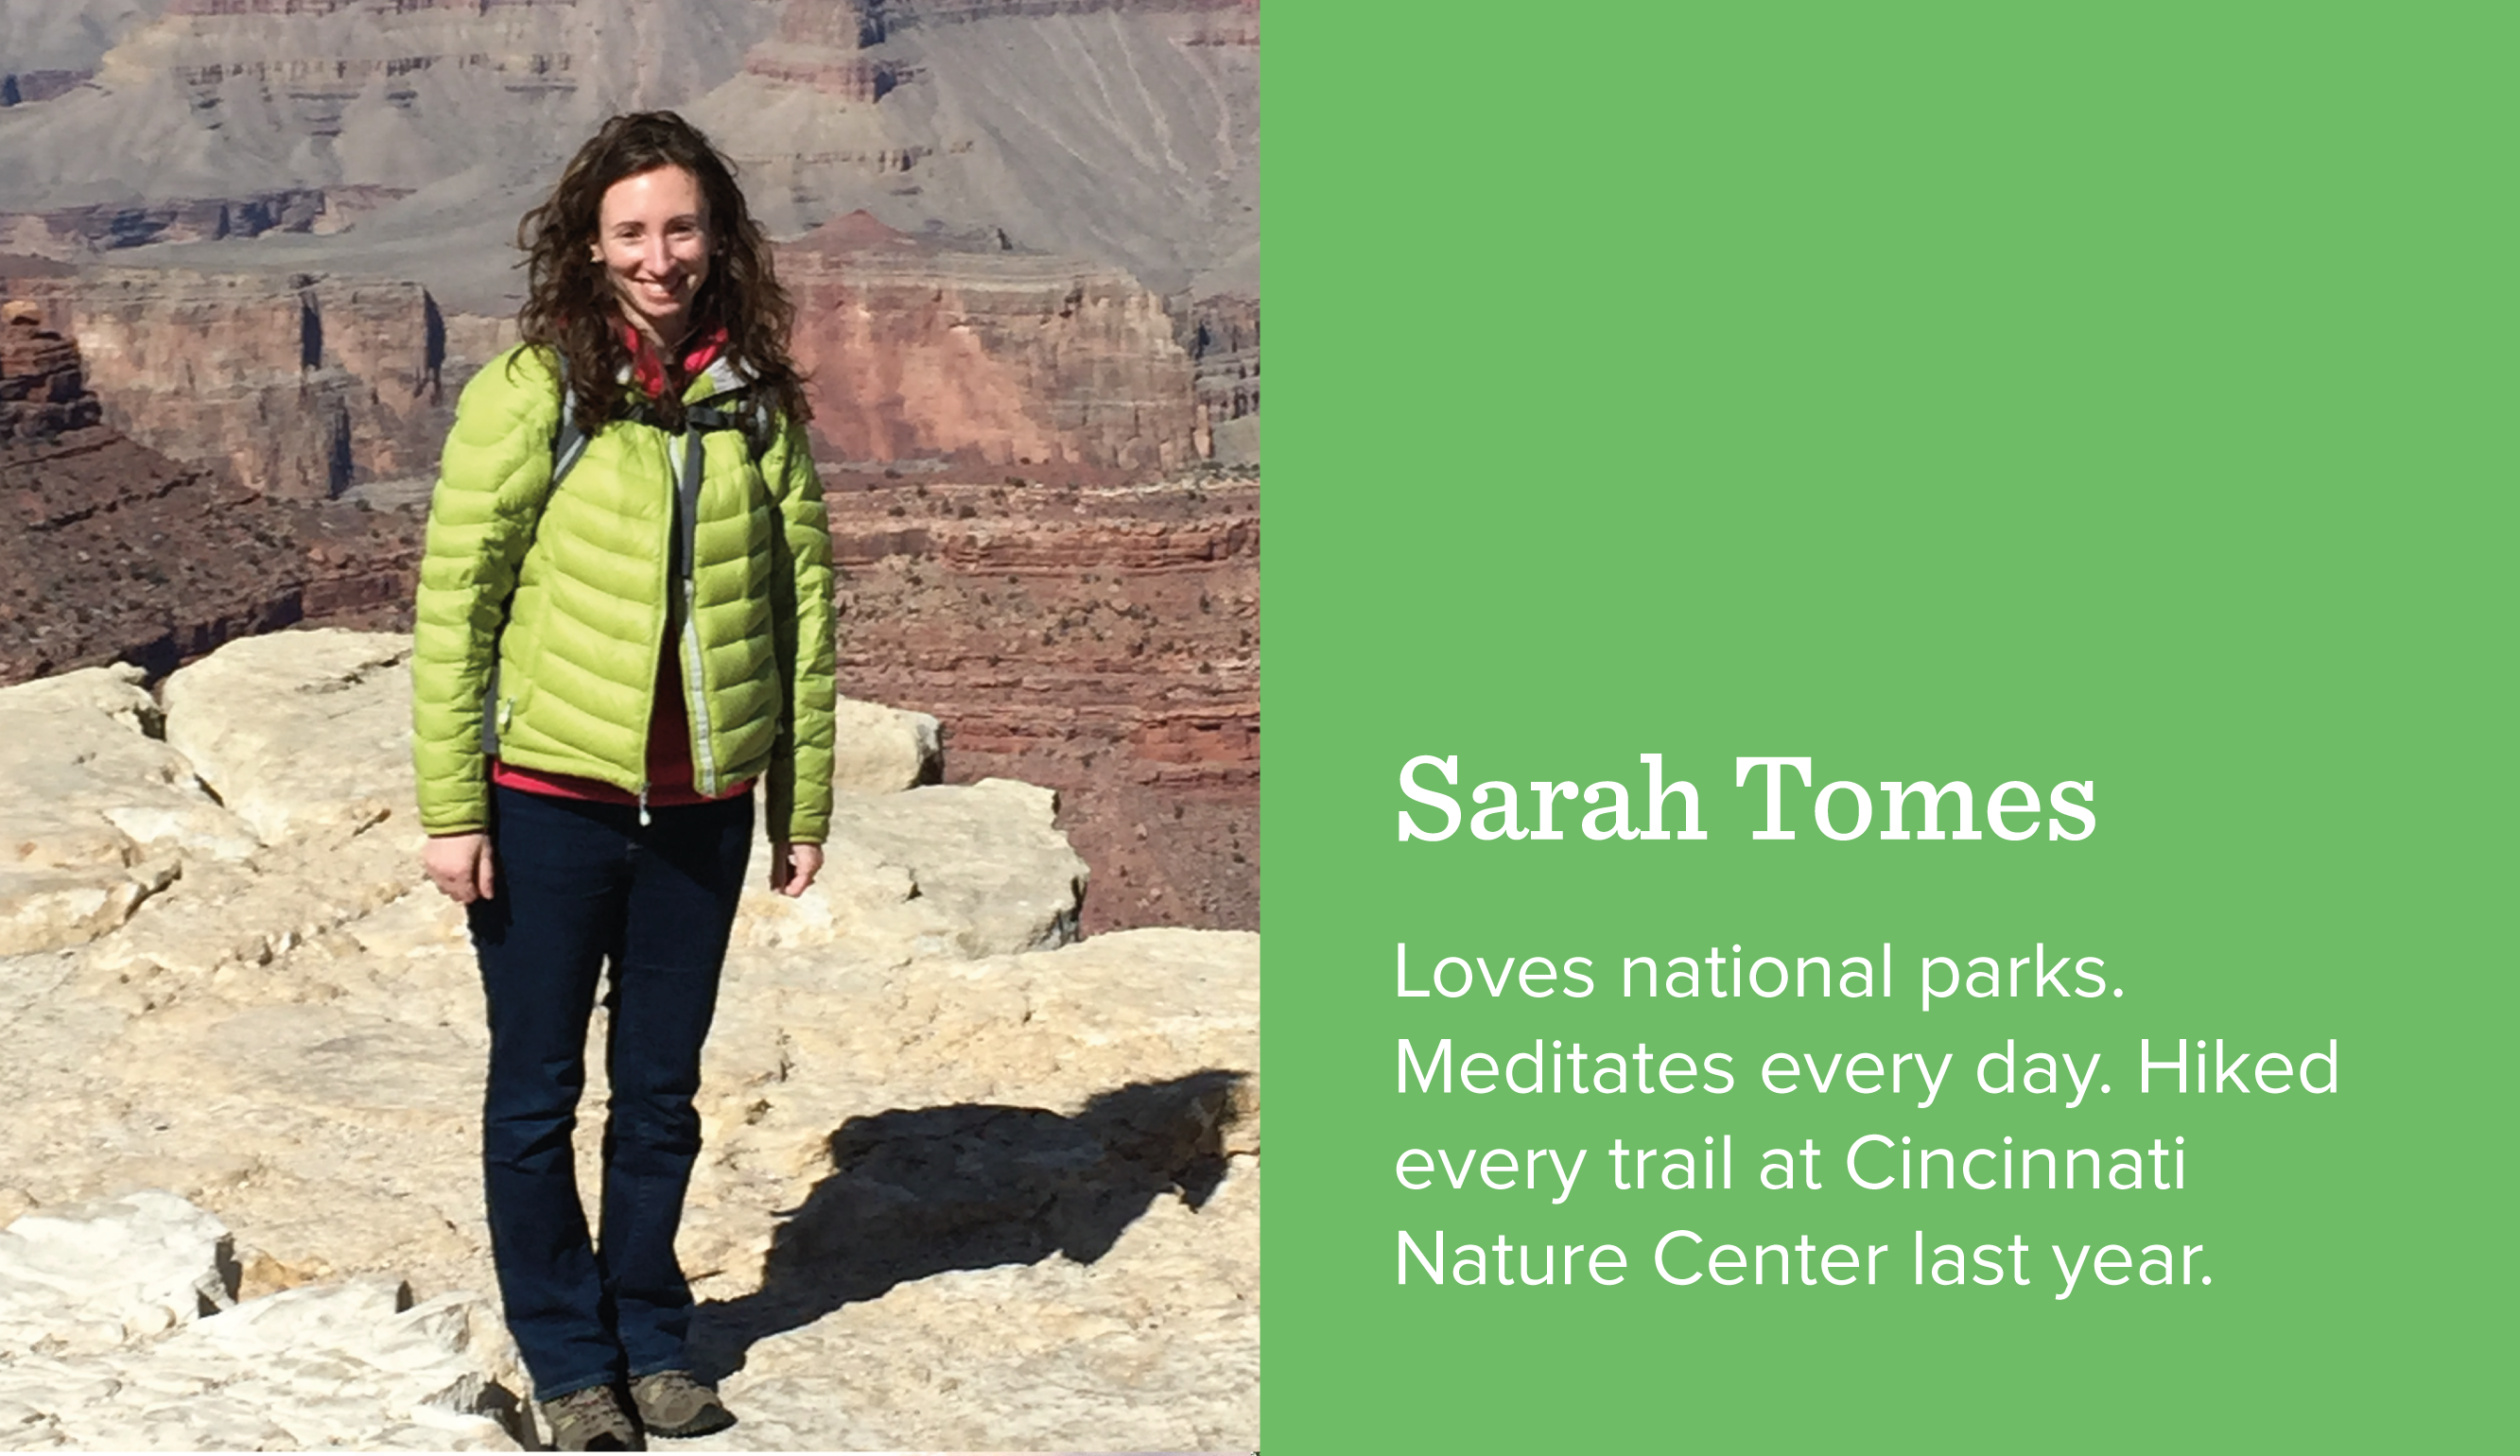 Sarah Tomes. Loves national parks. Meditates every day. Hiked every trail at Cincinnati Nature Center last year.